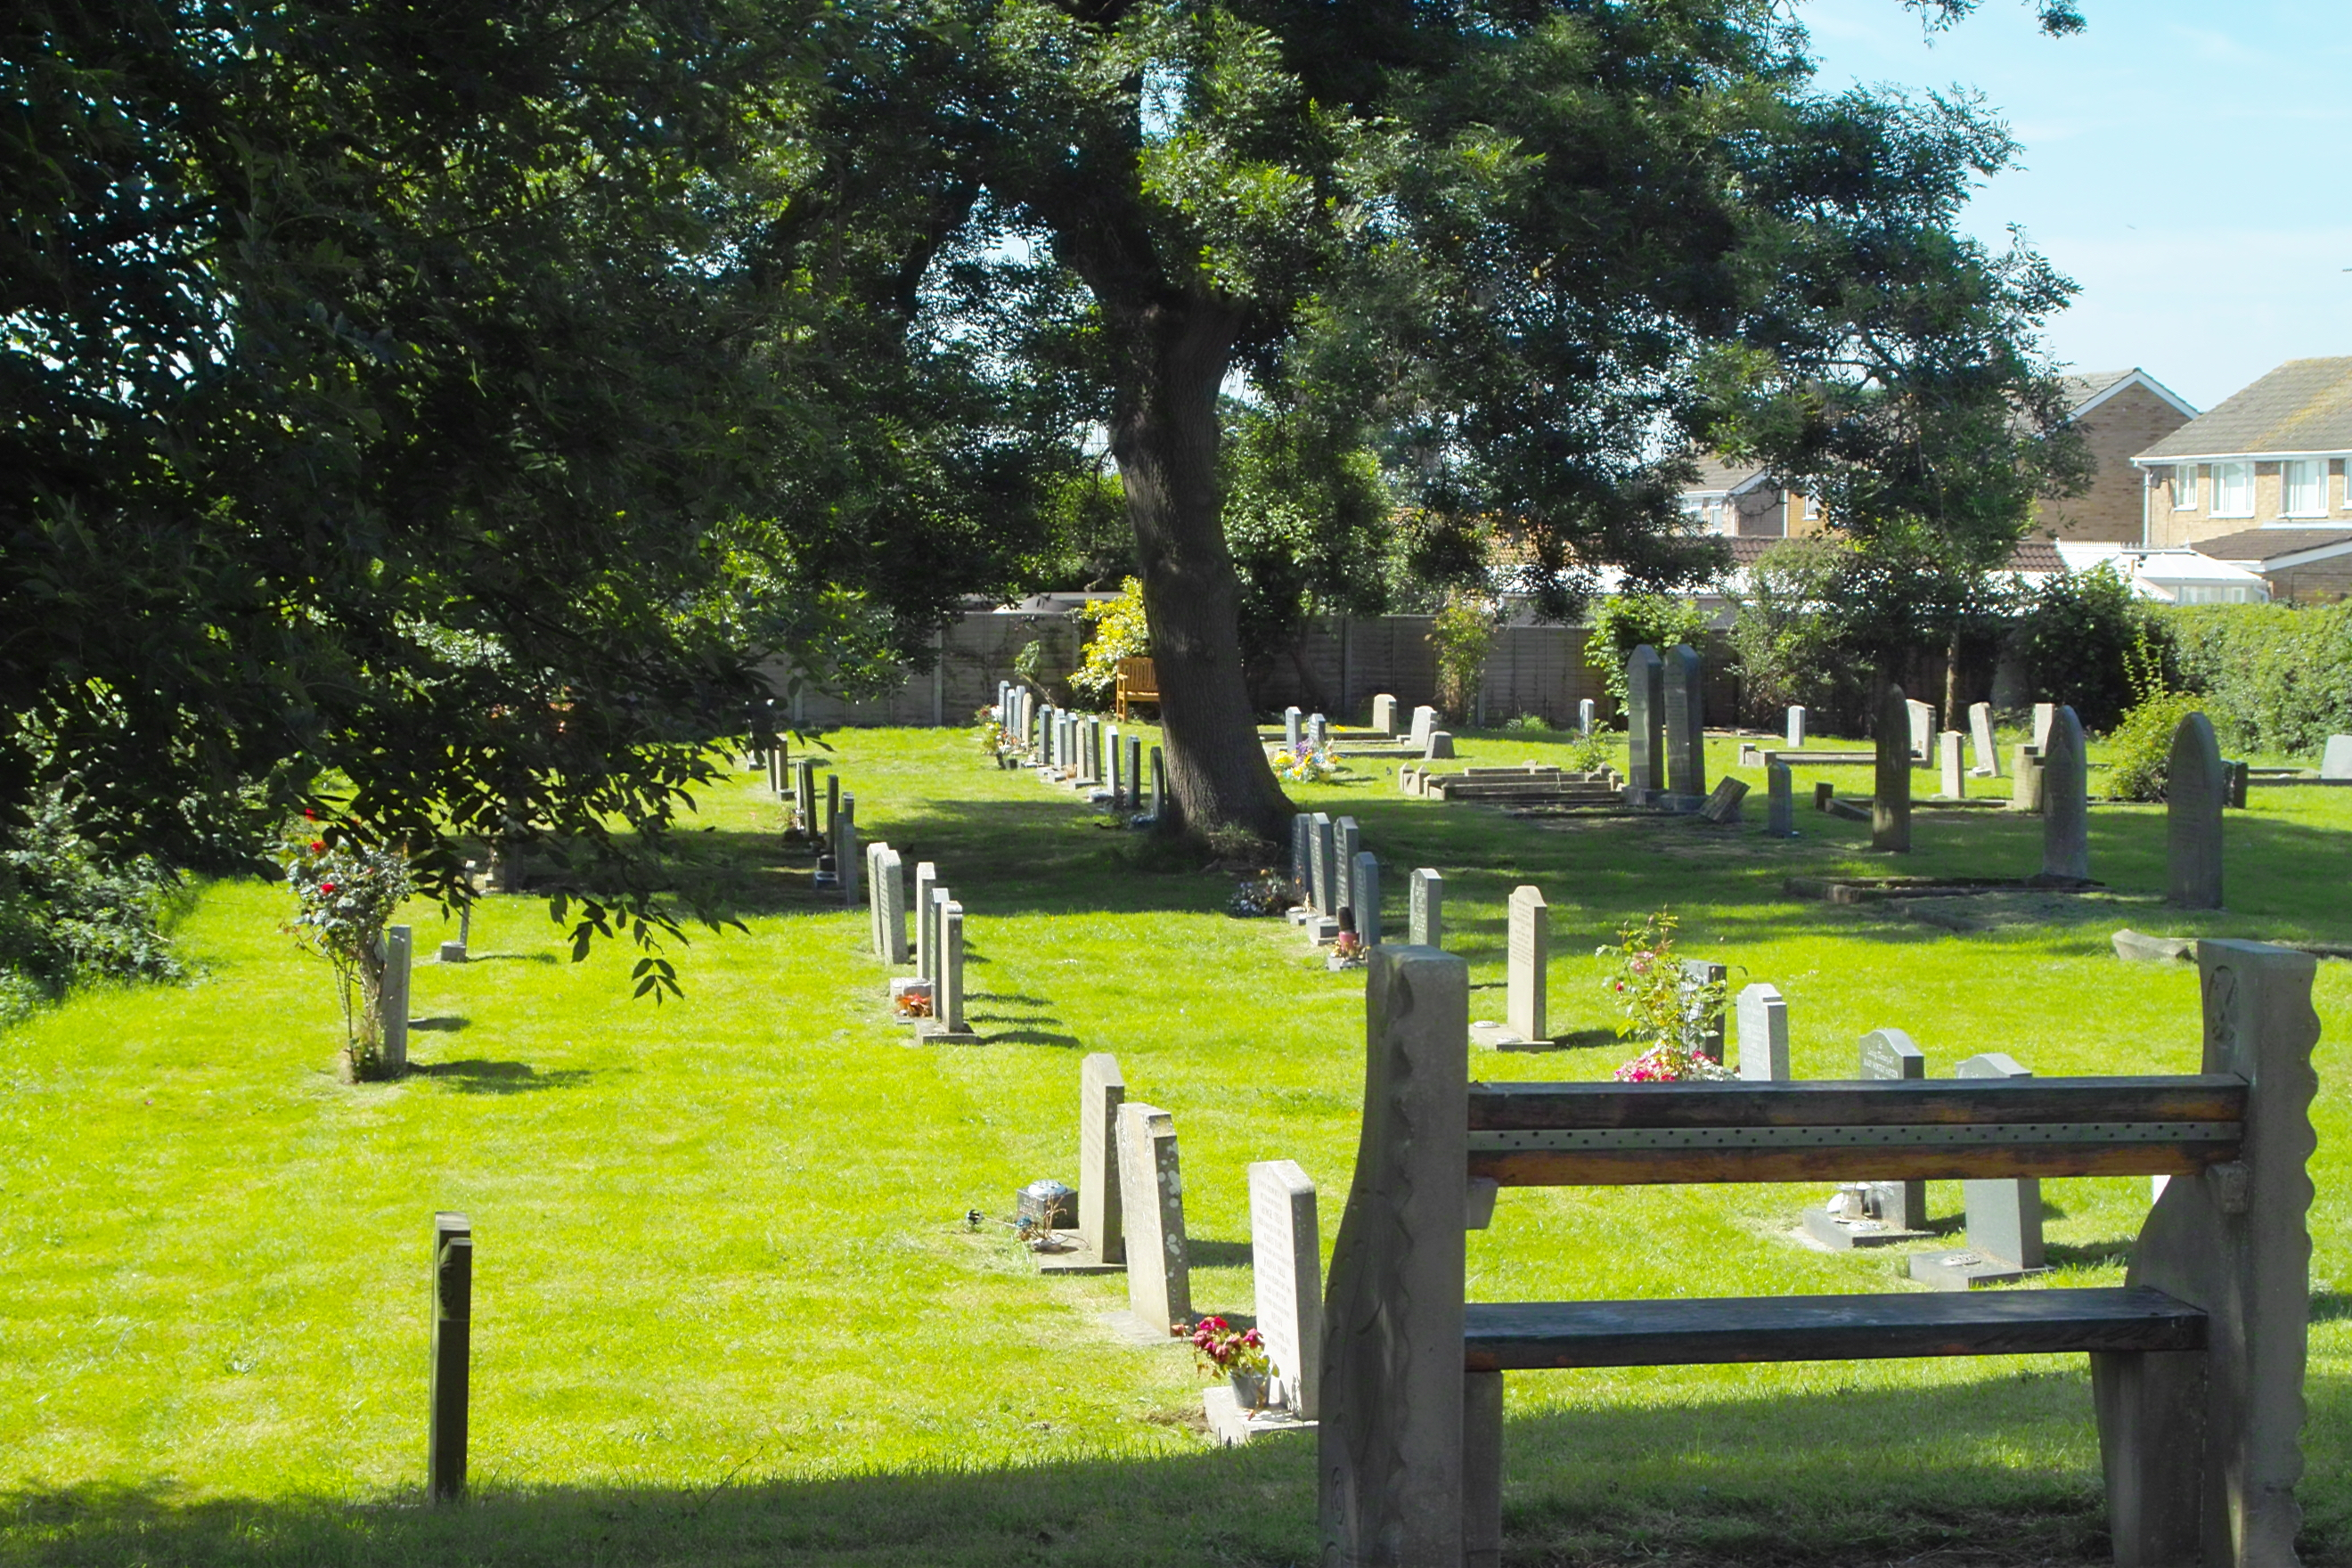 http://suttonparkandwawnechurchofengland.co.uk/wp-content/uploads/2016/08/Profile-13-St.Peters-Graveyard.jpg